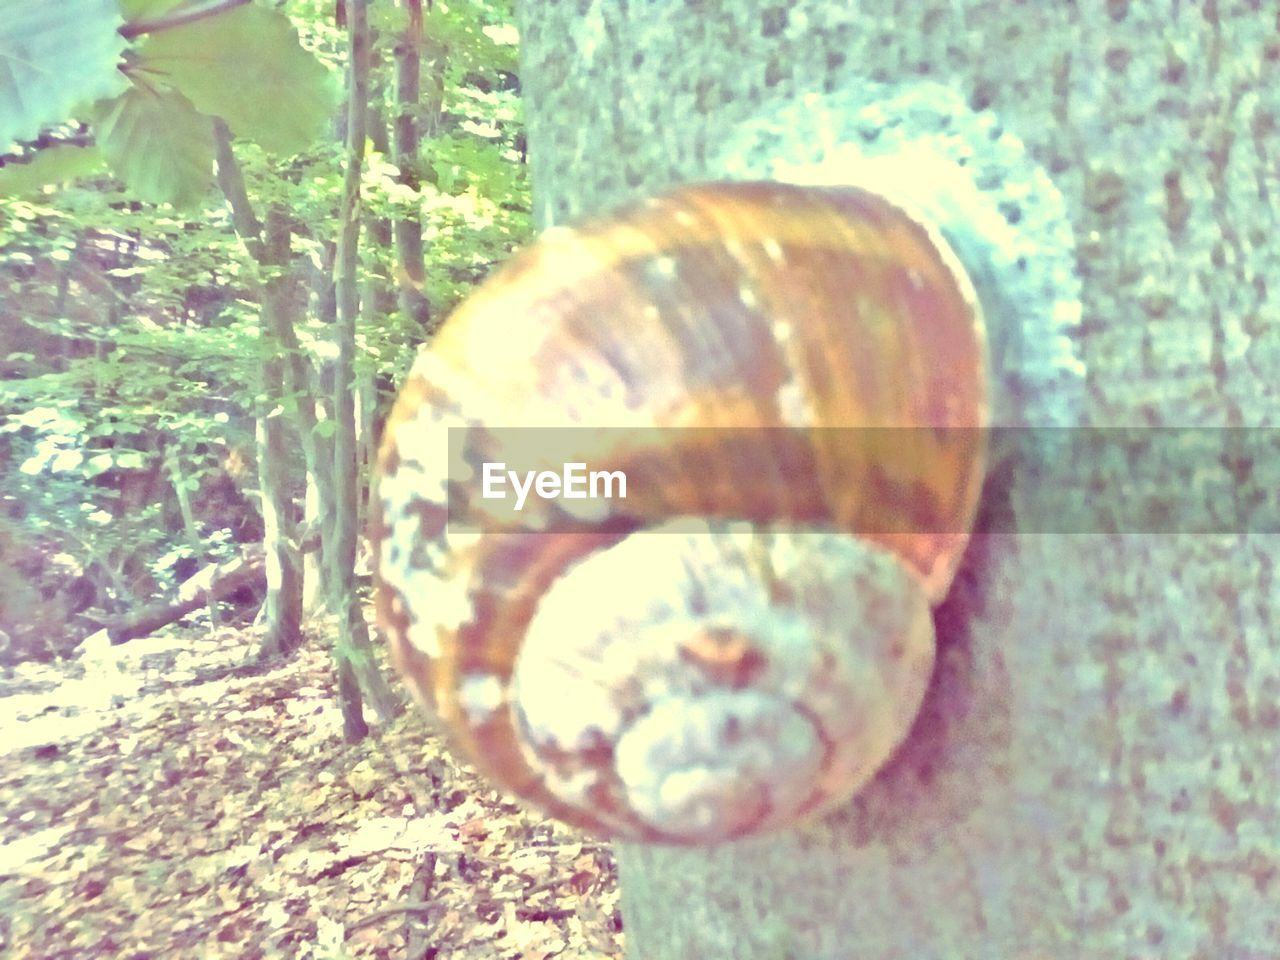 shell, animal shell, animal wildlife, close-up, animals in the wild, no people, animal, animal themes, day, nature, one animal, snail, mollusk, invertebrate, selective focus, gastropod, natural pattern, sunlight, beauty in nature, land, outdoors